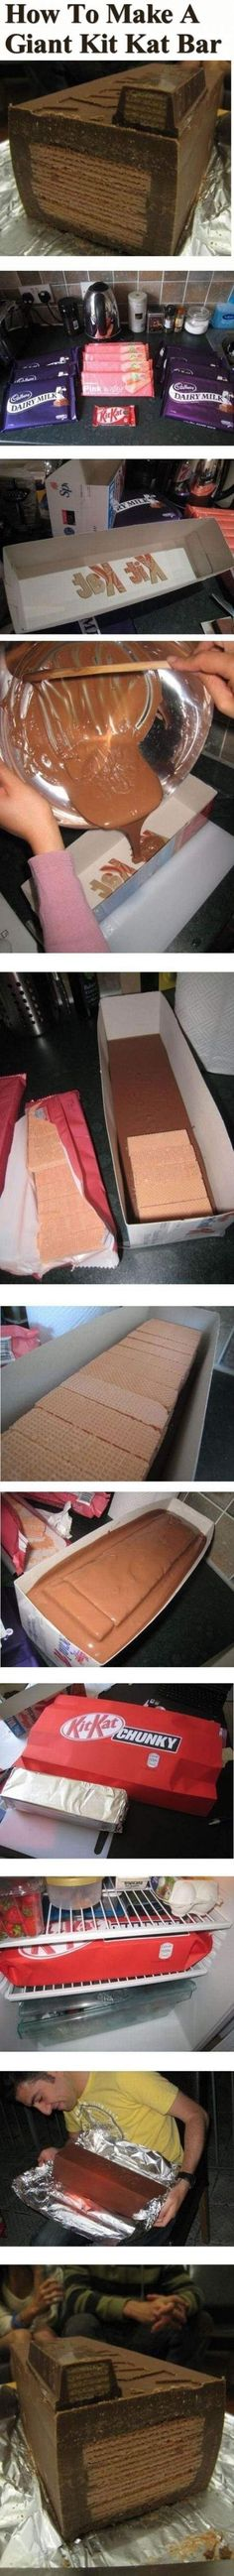 How To Make A Giant Kit Kat Bar candy chocolate delicious recipe recipes dessert recipe dessert recipes food tutorials no bake food tutorial kit kats NOT DIRECT LINK Candy Recipes, Baking Recipes, Dessert Recipes, Just Desserts, Delicious Desserts, Yummy Food, Kit Kat Gigante, Giant Kit Kat Bar, Giant Candy Bars